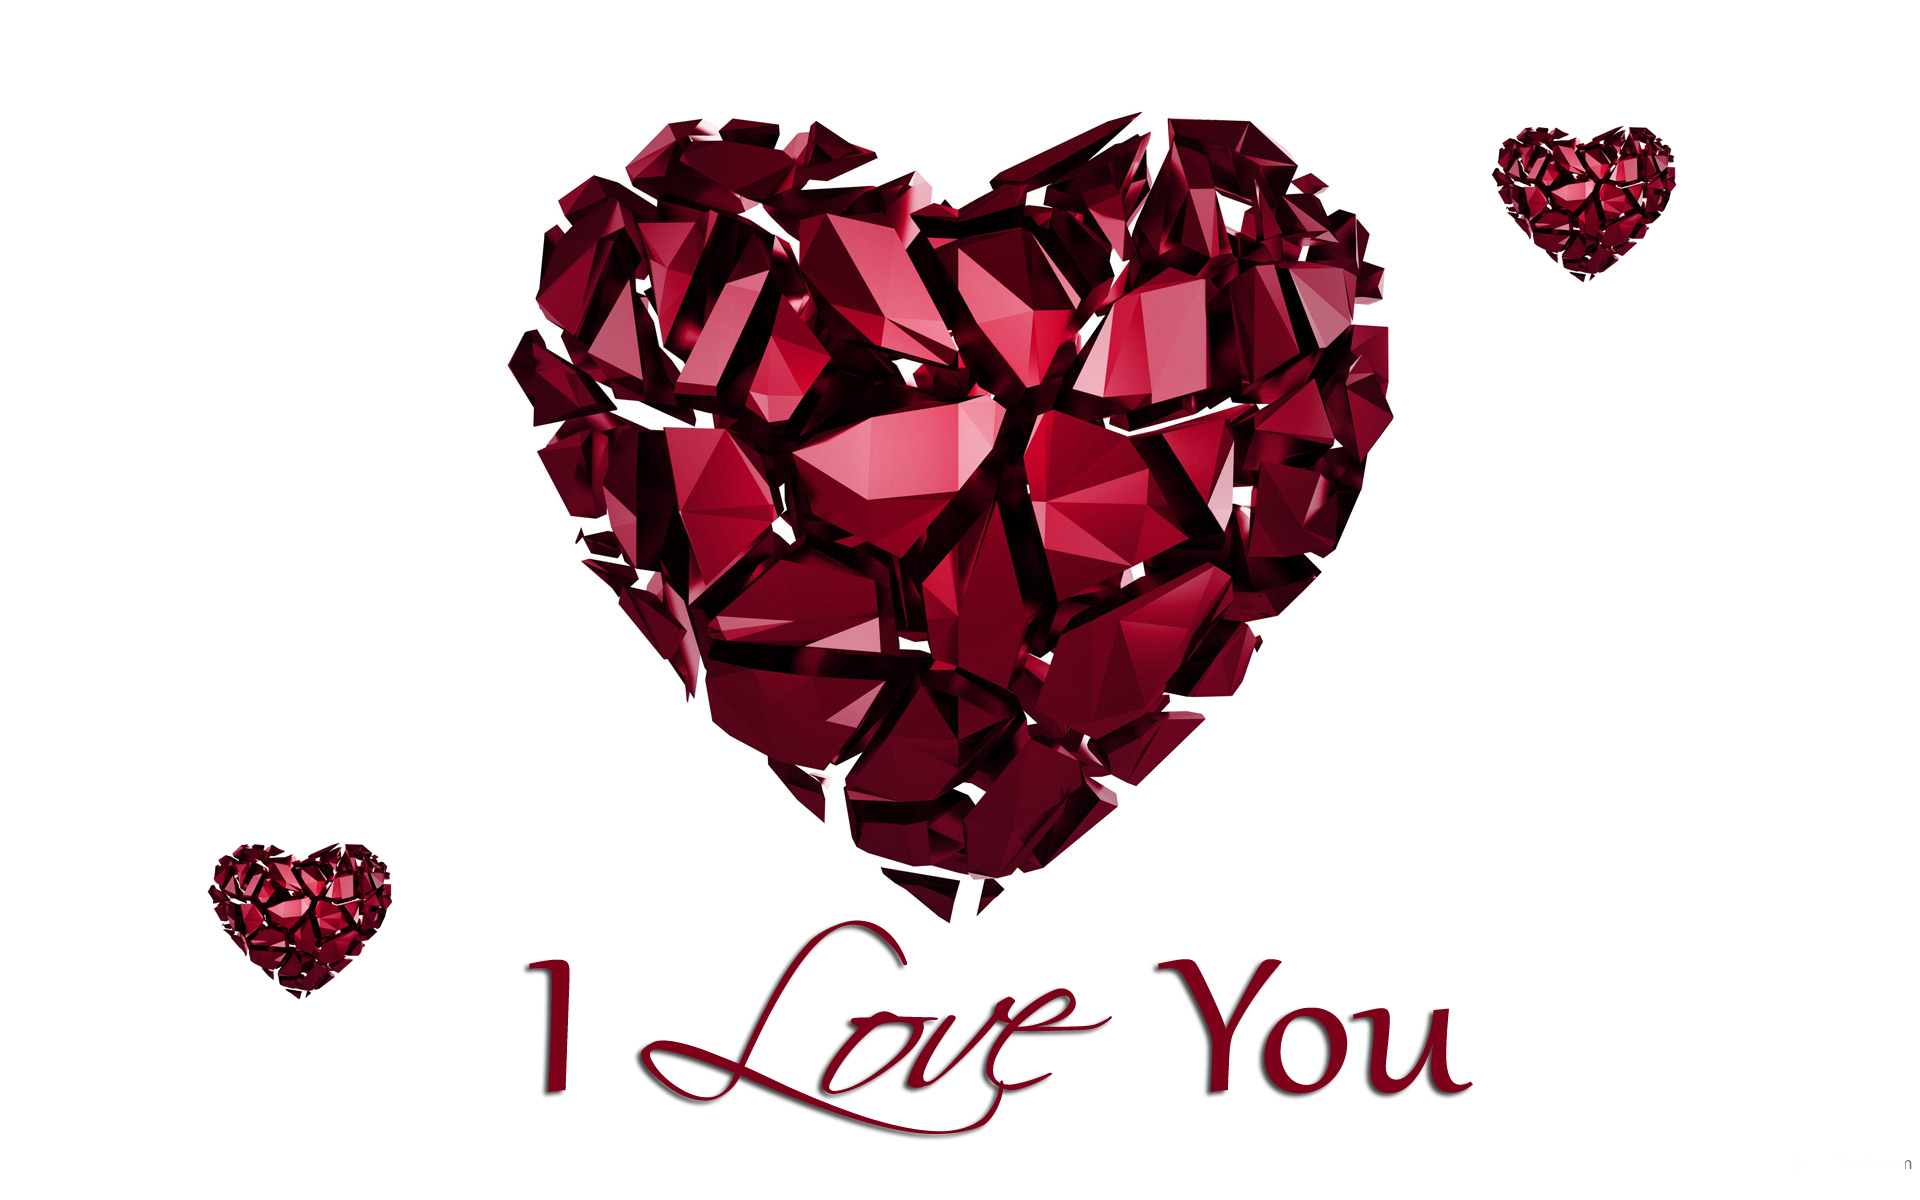 Love Heart Wallpaper Background 3d : I Love You Wallpapers, Pictures, Images